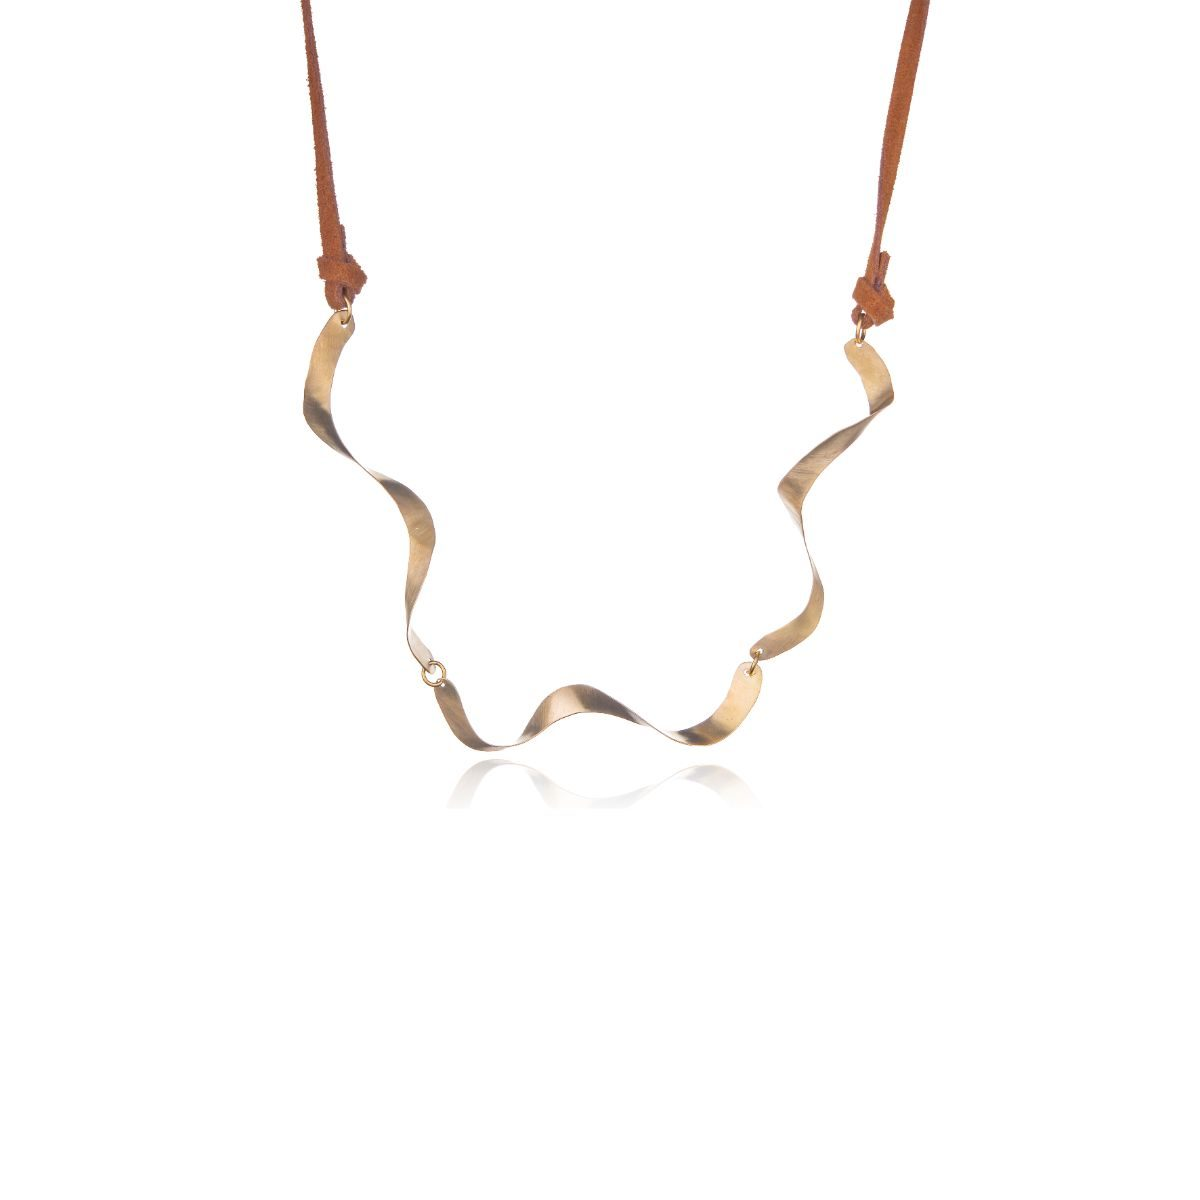 Sidney three-piece corkscrew necklace in gold-plated brass finished with brown suede